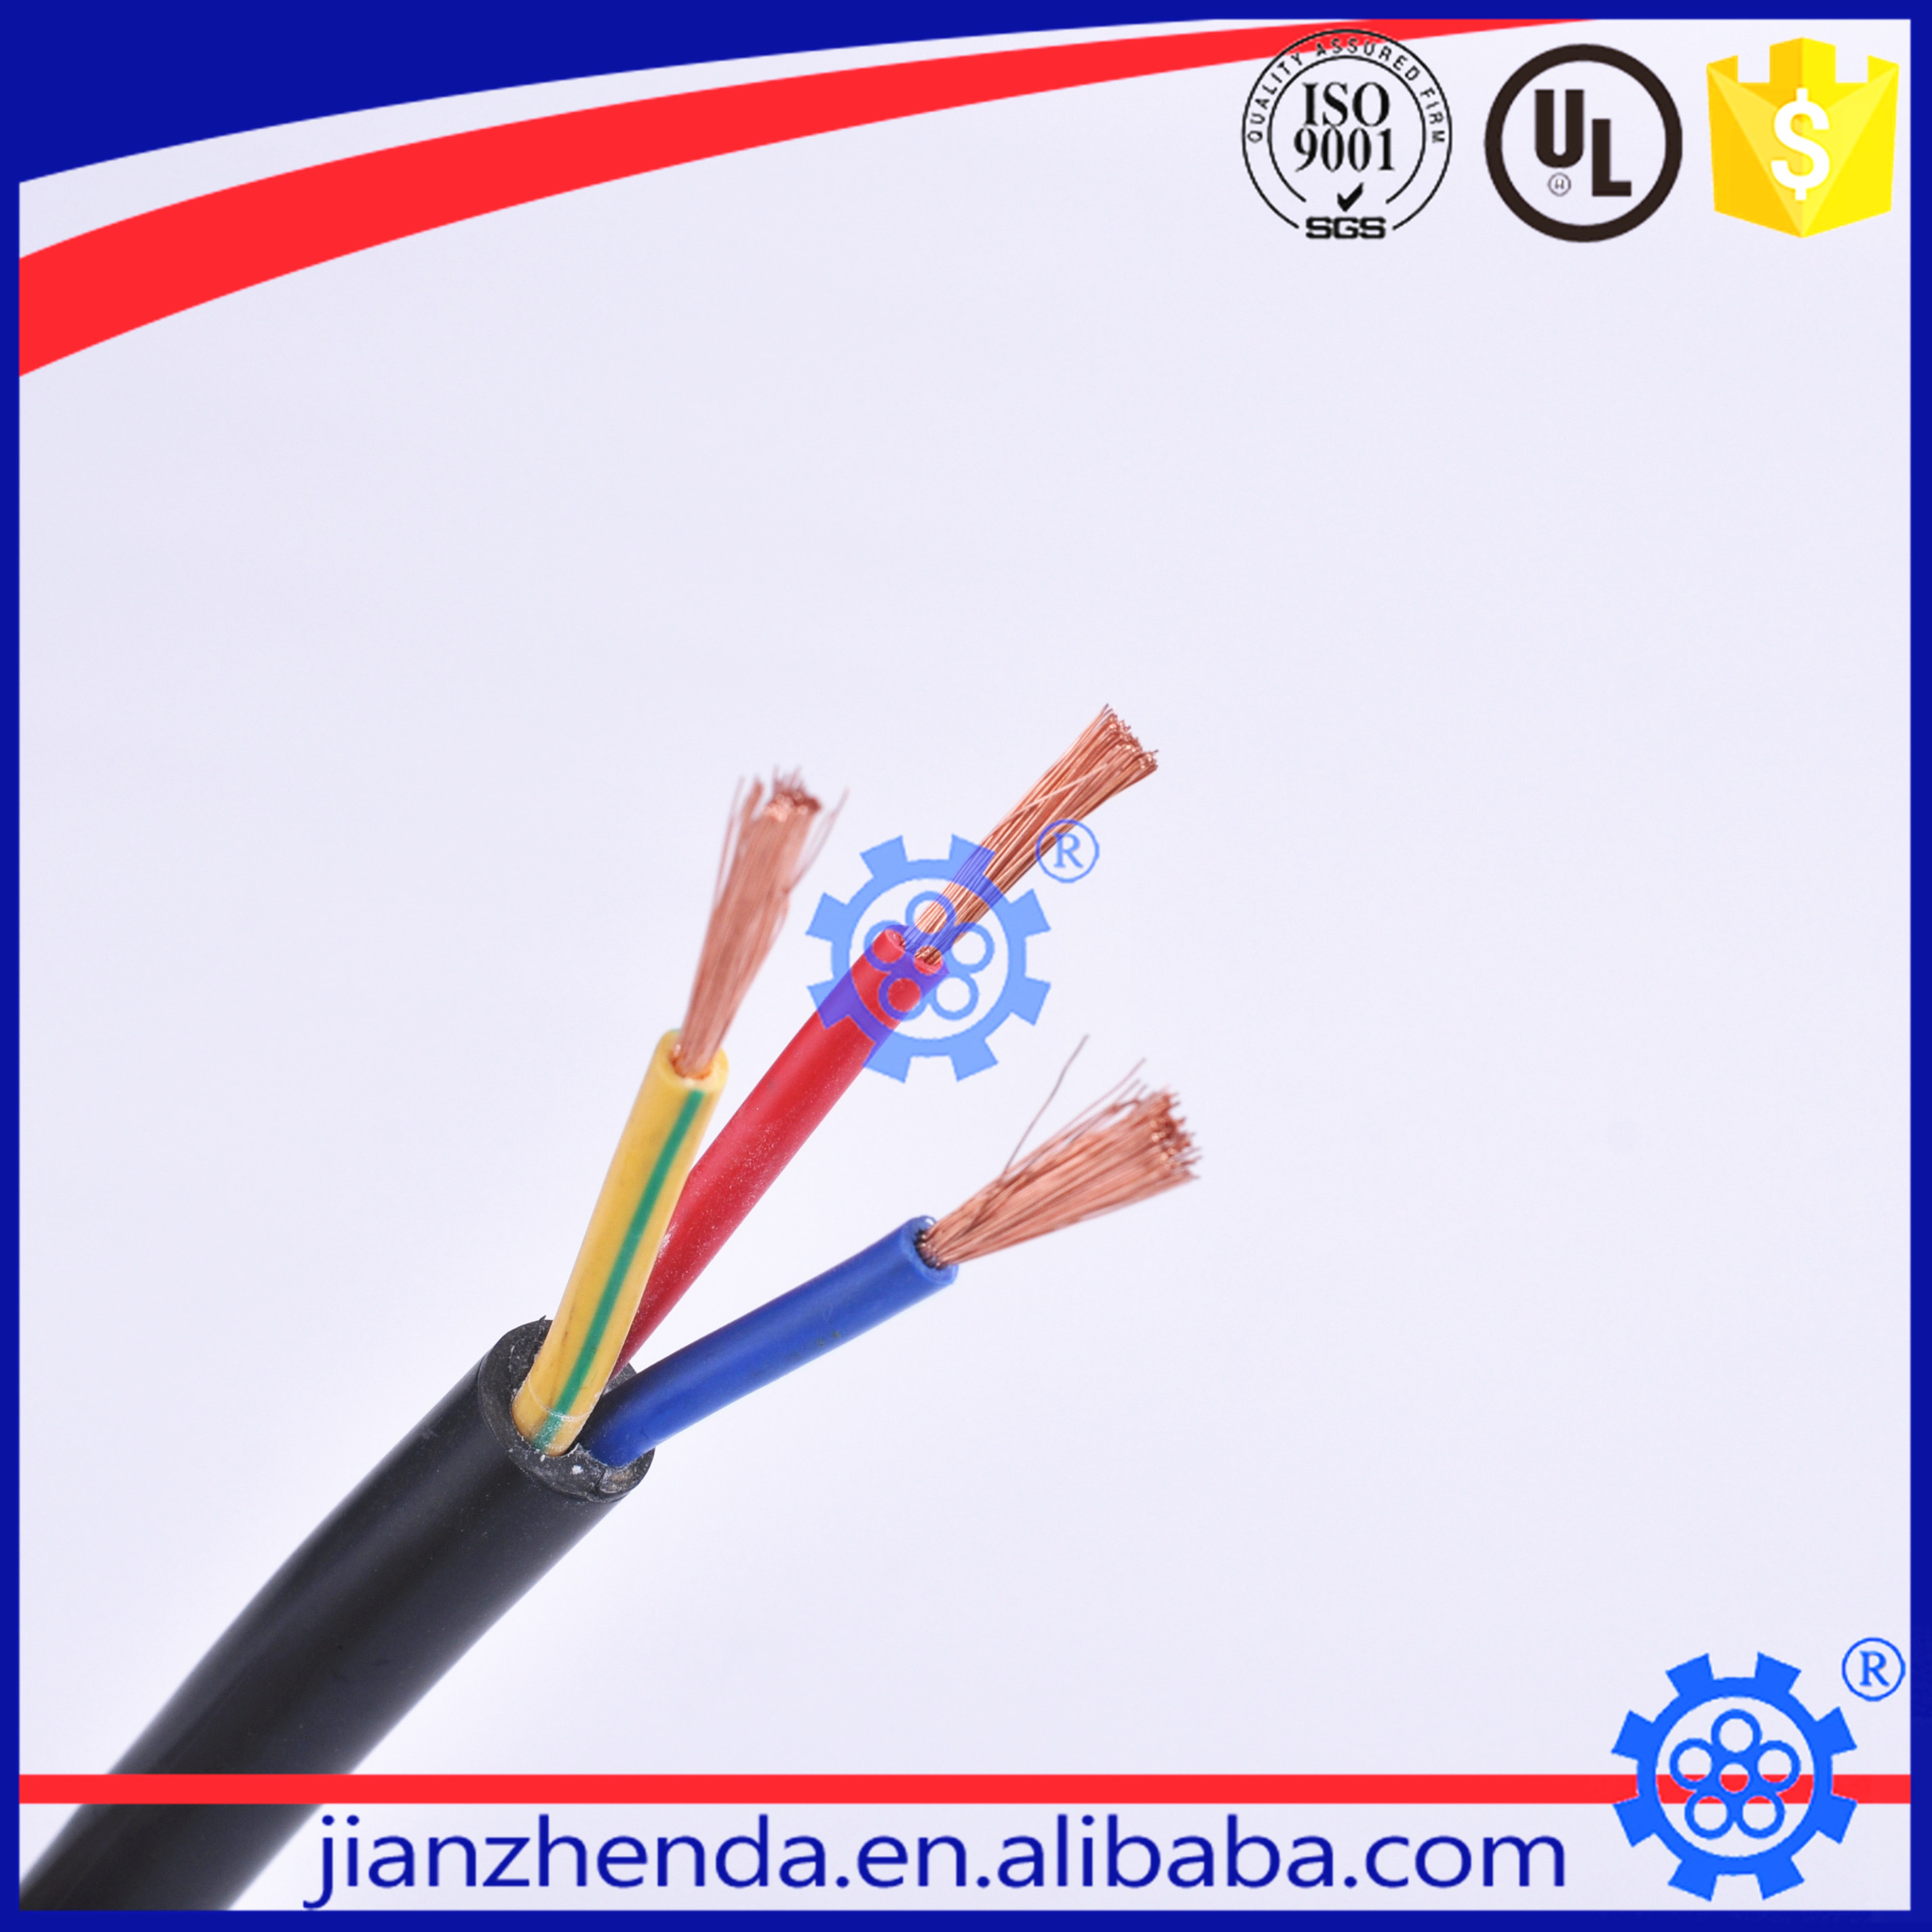 Cable buy electric cable 2 5 sq mm cable 1 5 sqmm wire product on - 2 5 Mm Electrical Wire 2 5 Mm Electrical Wire Suppliers And Manufacturers At Alibaba Com